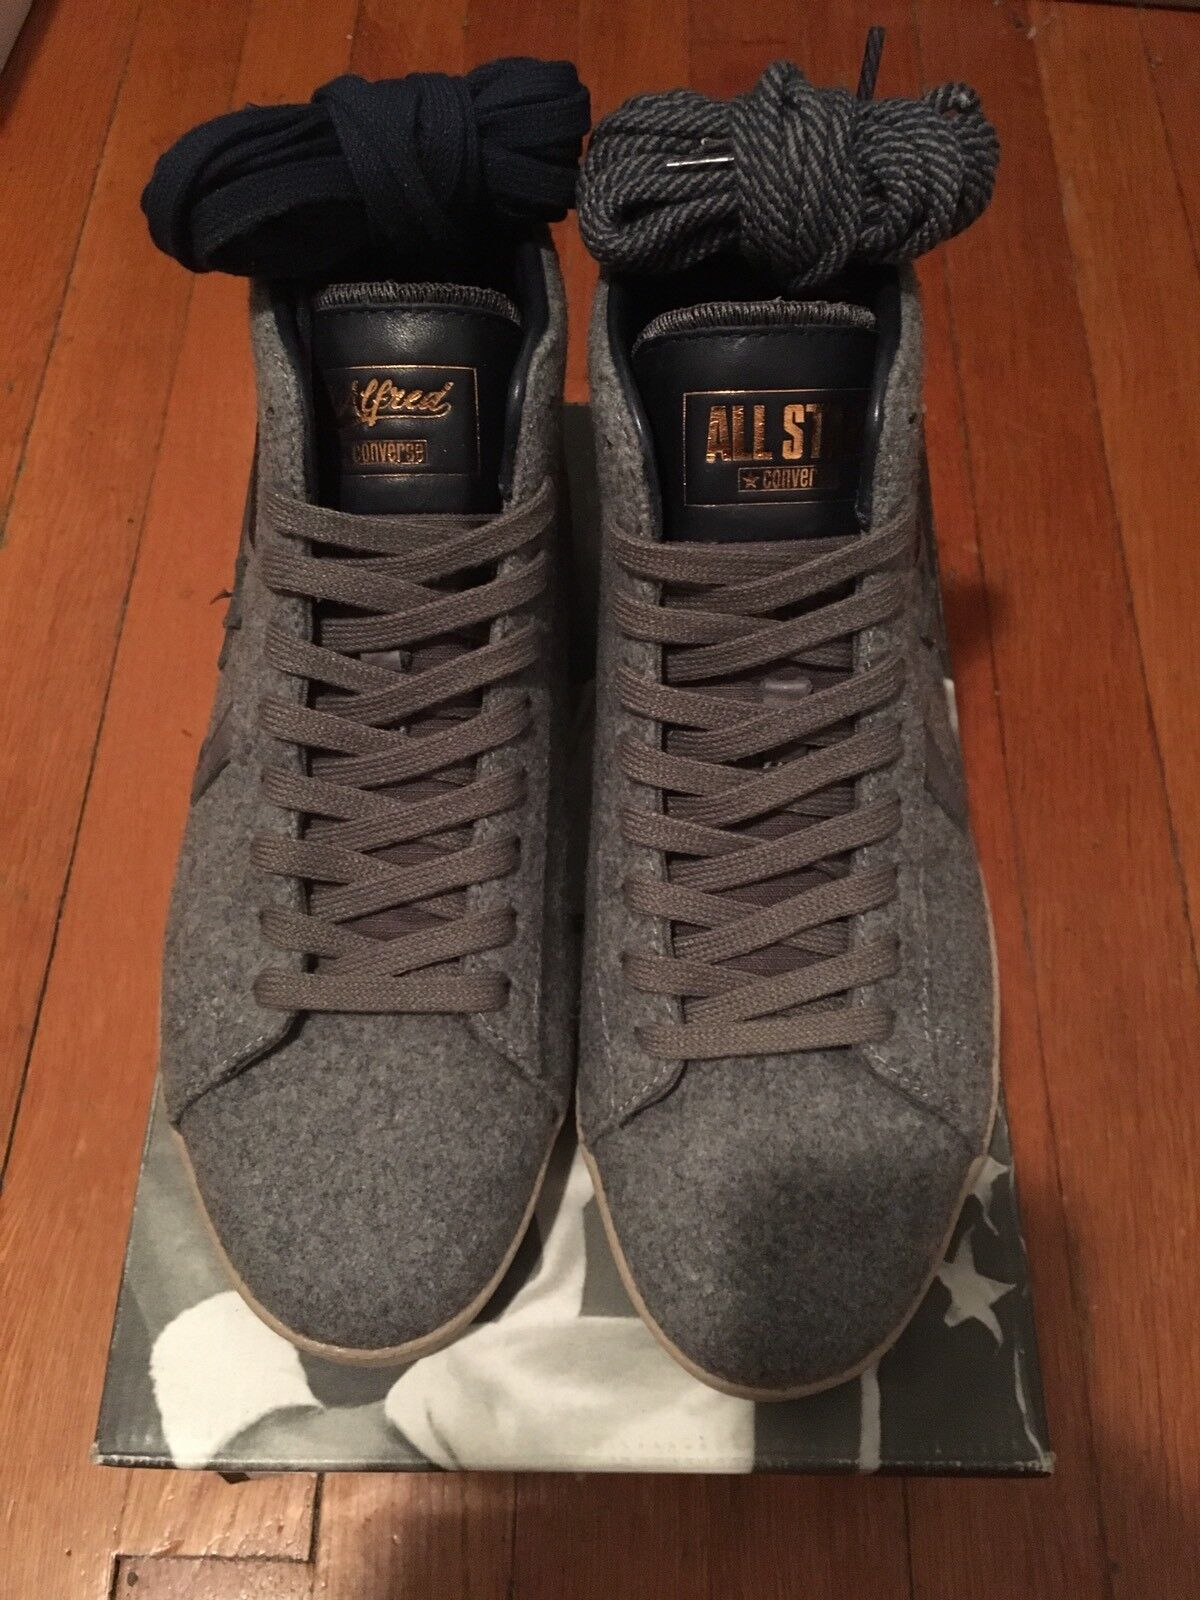 VNDS Converse X St. Alfrot's Converse Pro Leather Premium Wool Limited Edt Sz 8